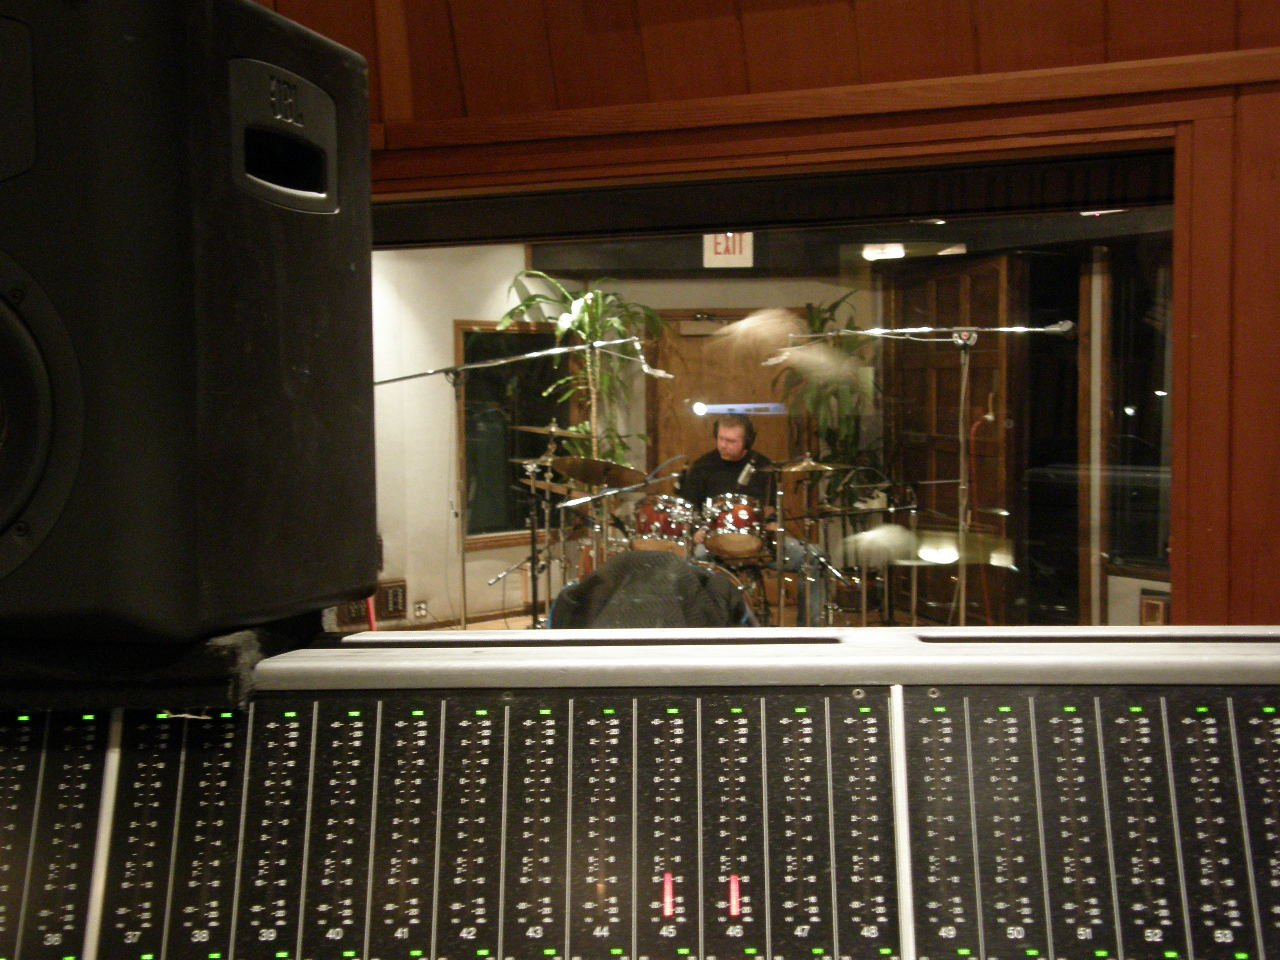 John laying down another one of his signature grooves.